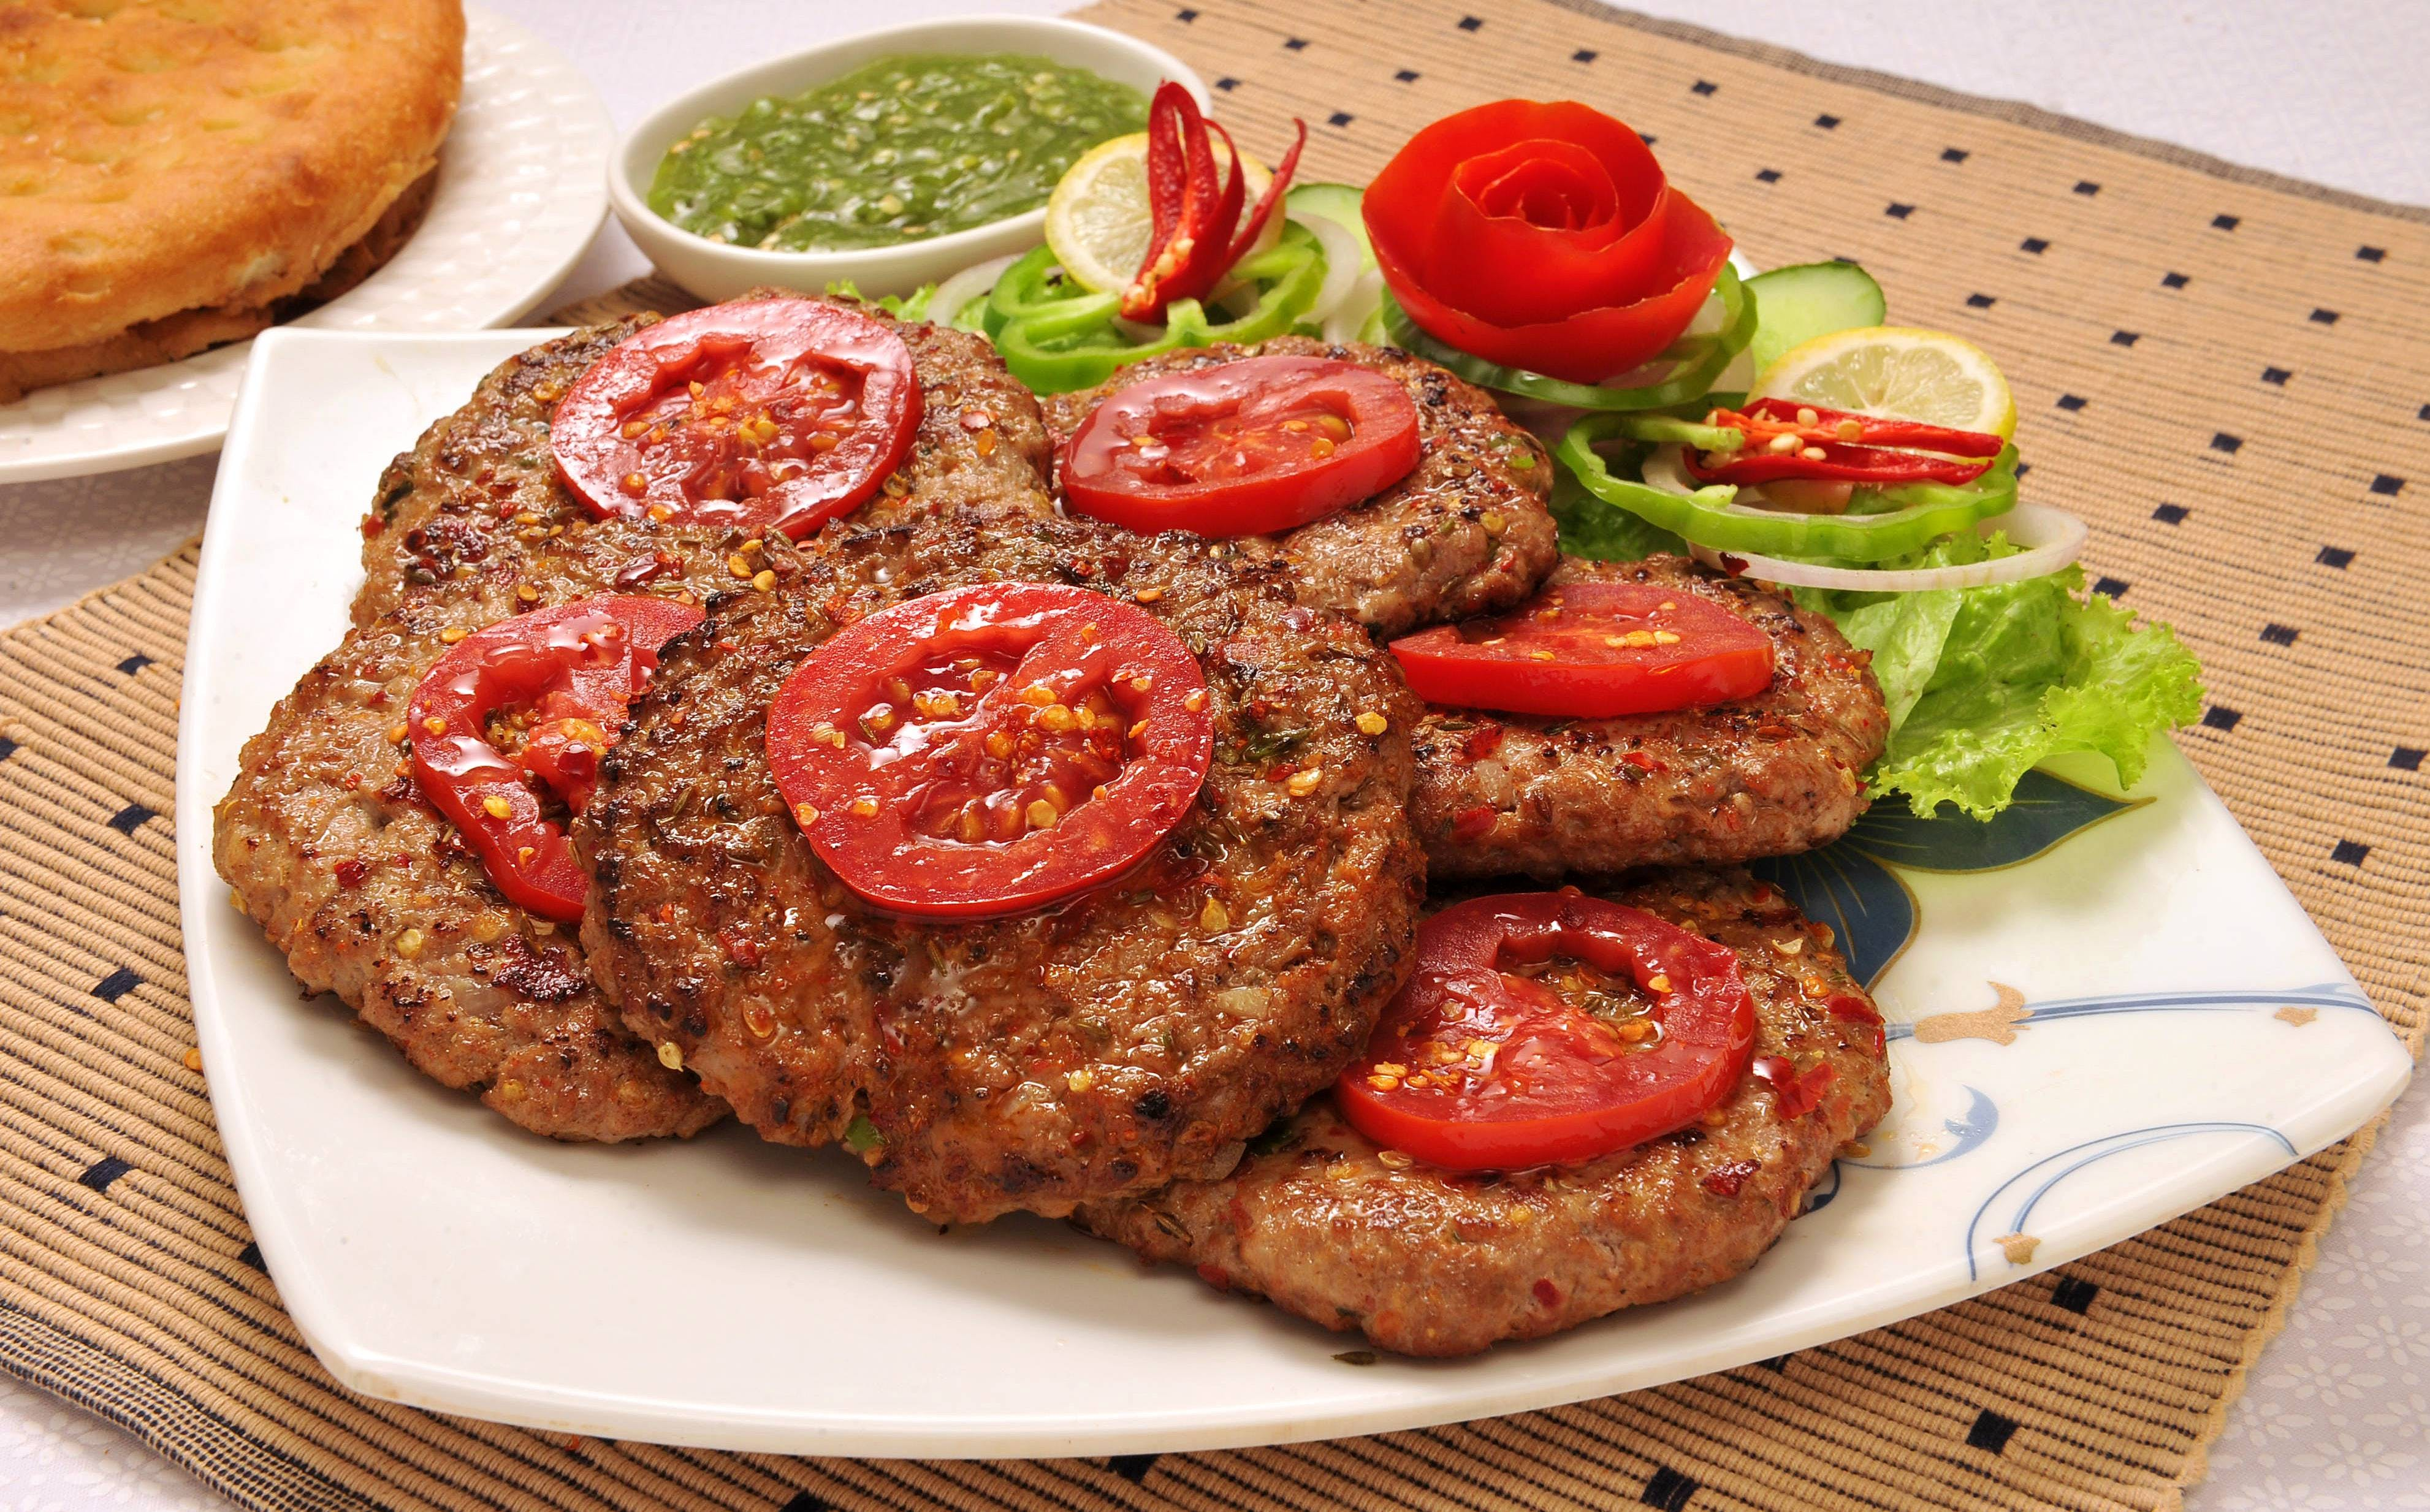 CHAPALI KEBAB HAS UNIQUE TASTE AND ONE OF PAKISTAN'S FAVORITE DISH